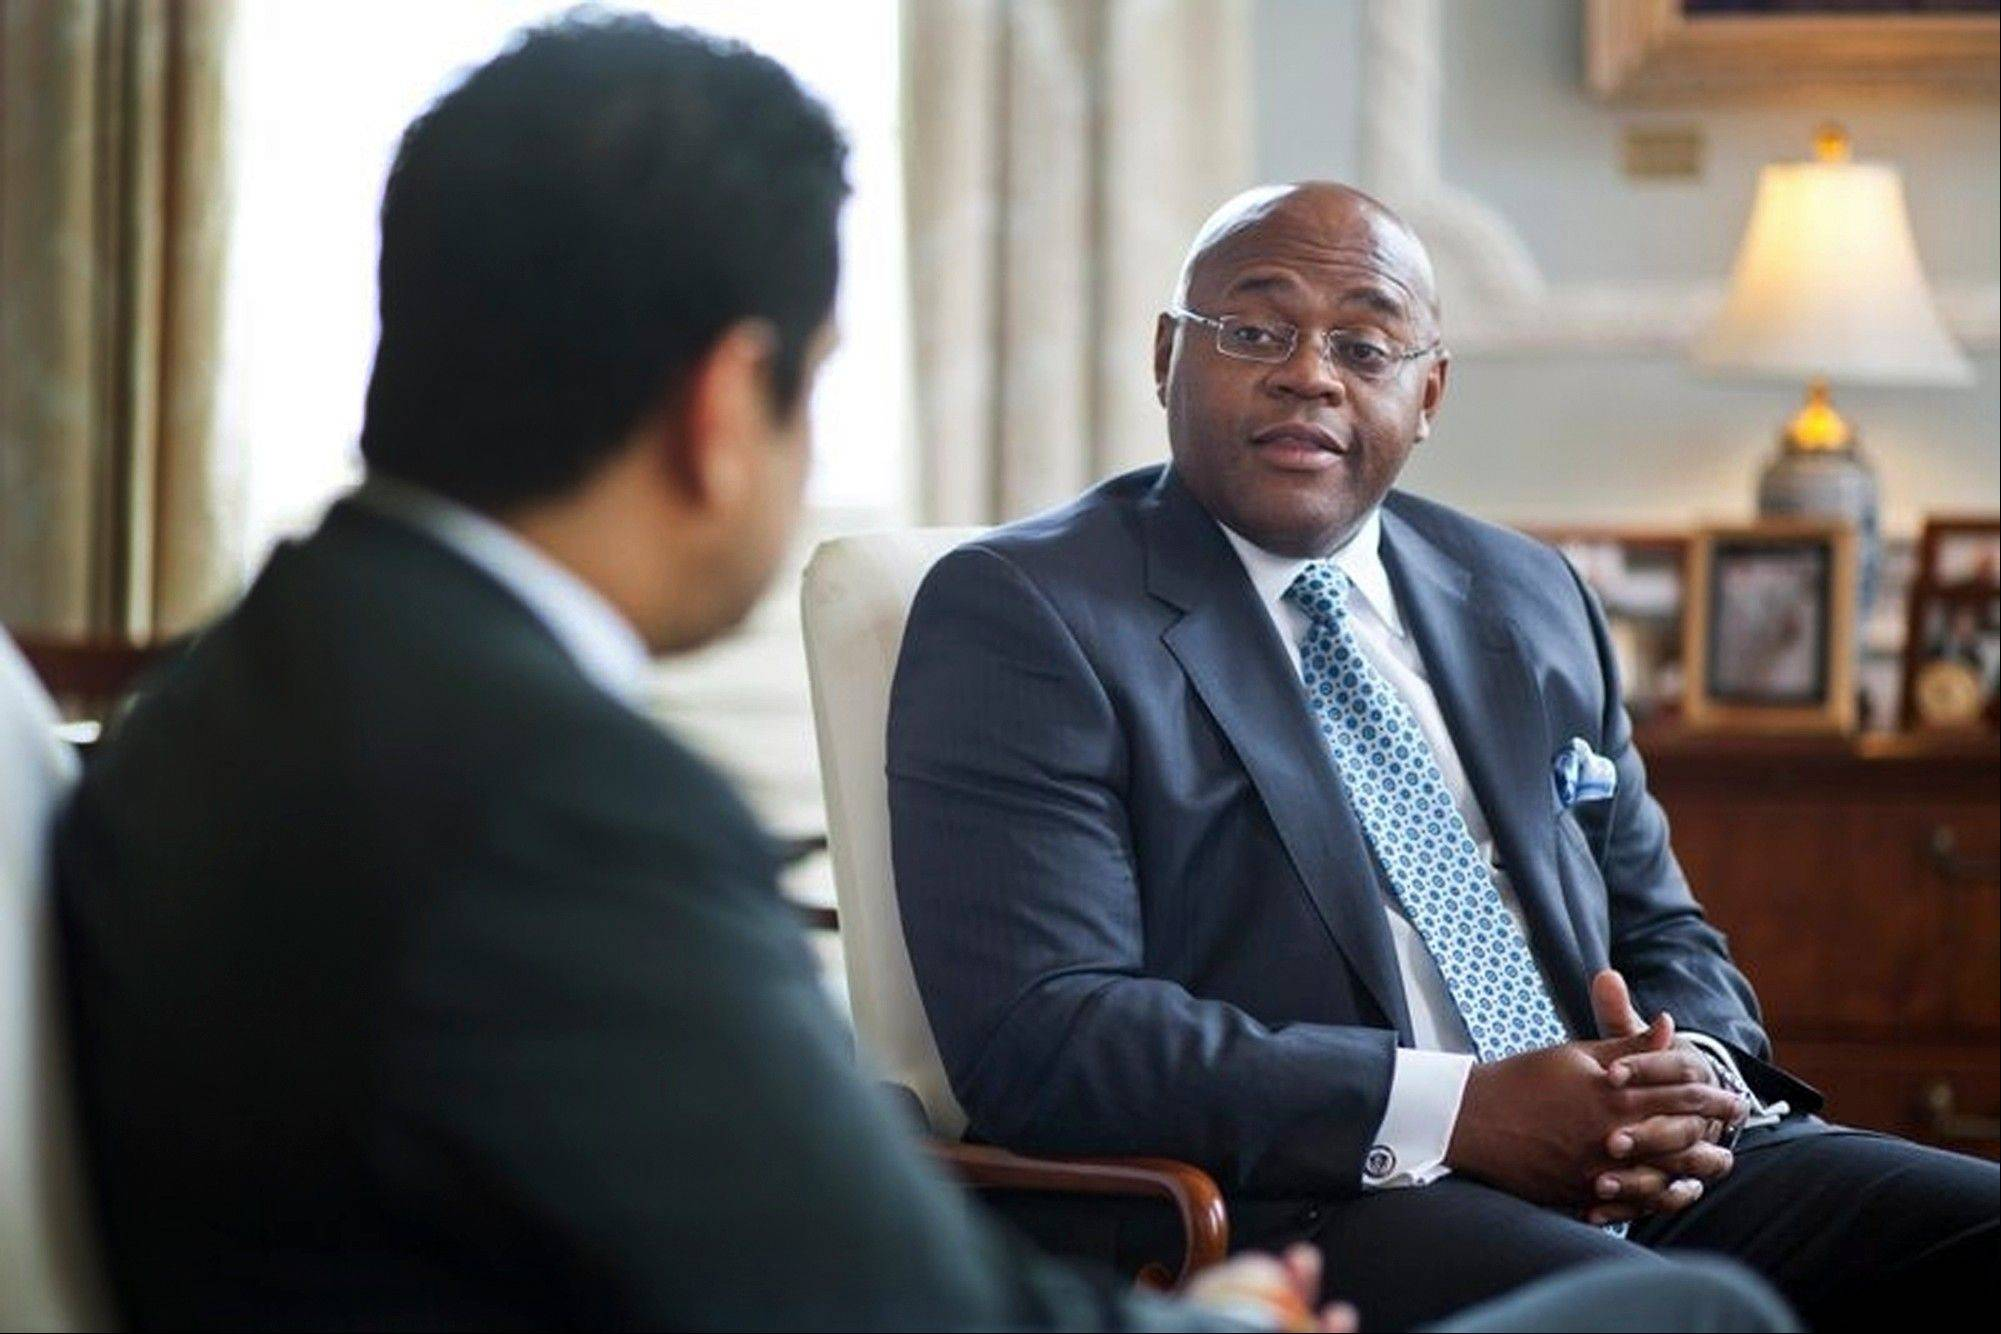 William �Mo� Cowan, right, former chief of staff for Gov. Deval Patrick. On Wednesday, Jan. 30 2013, Patrick will appoint Cowan as interim senator to fill our the term for John Kerry.